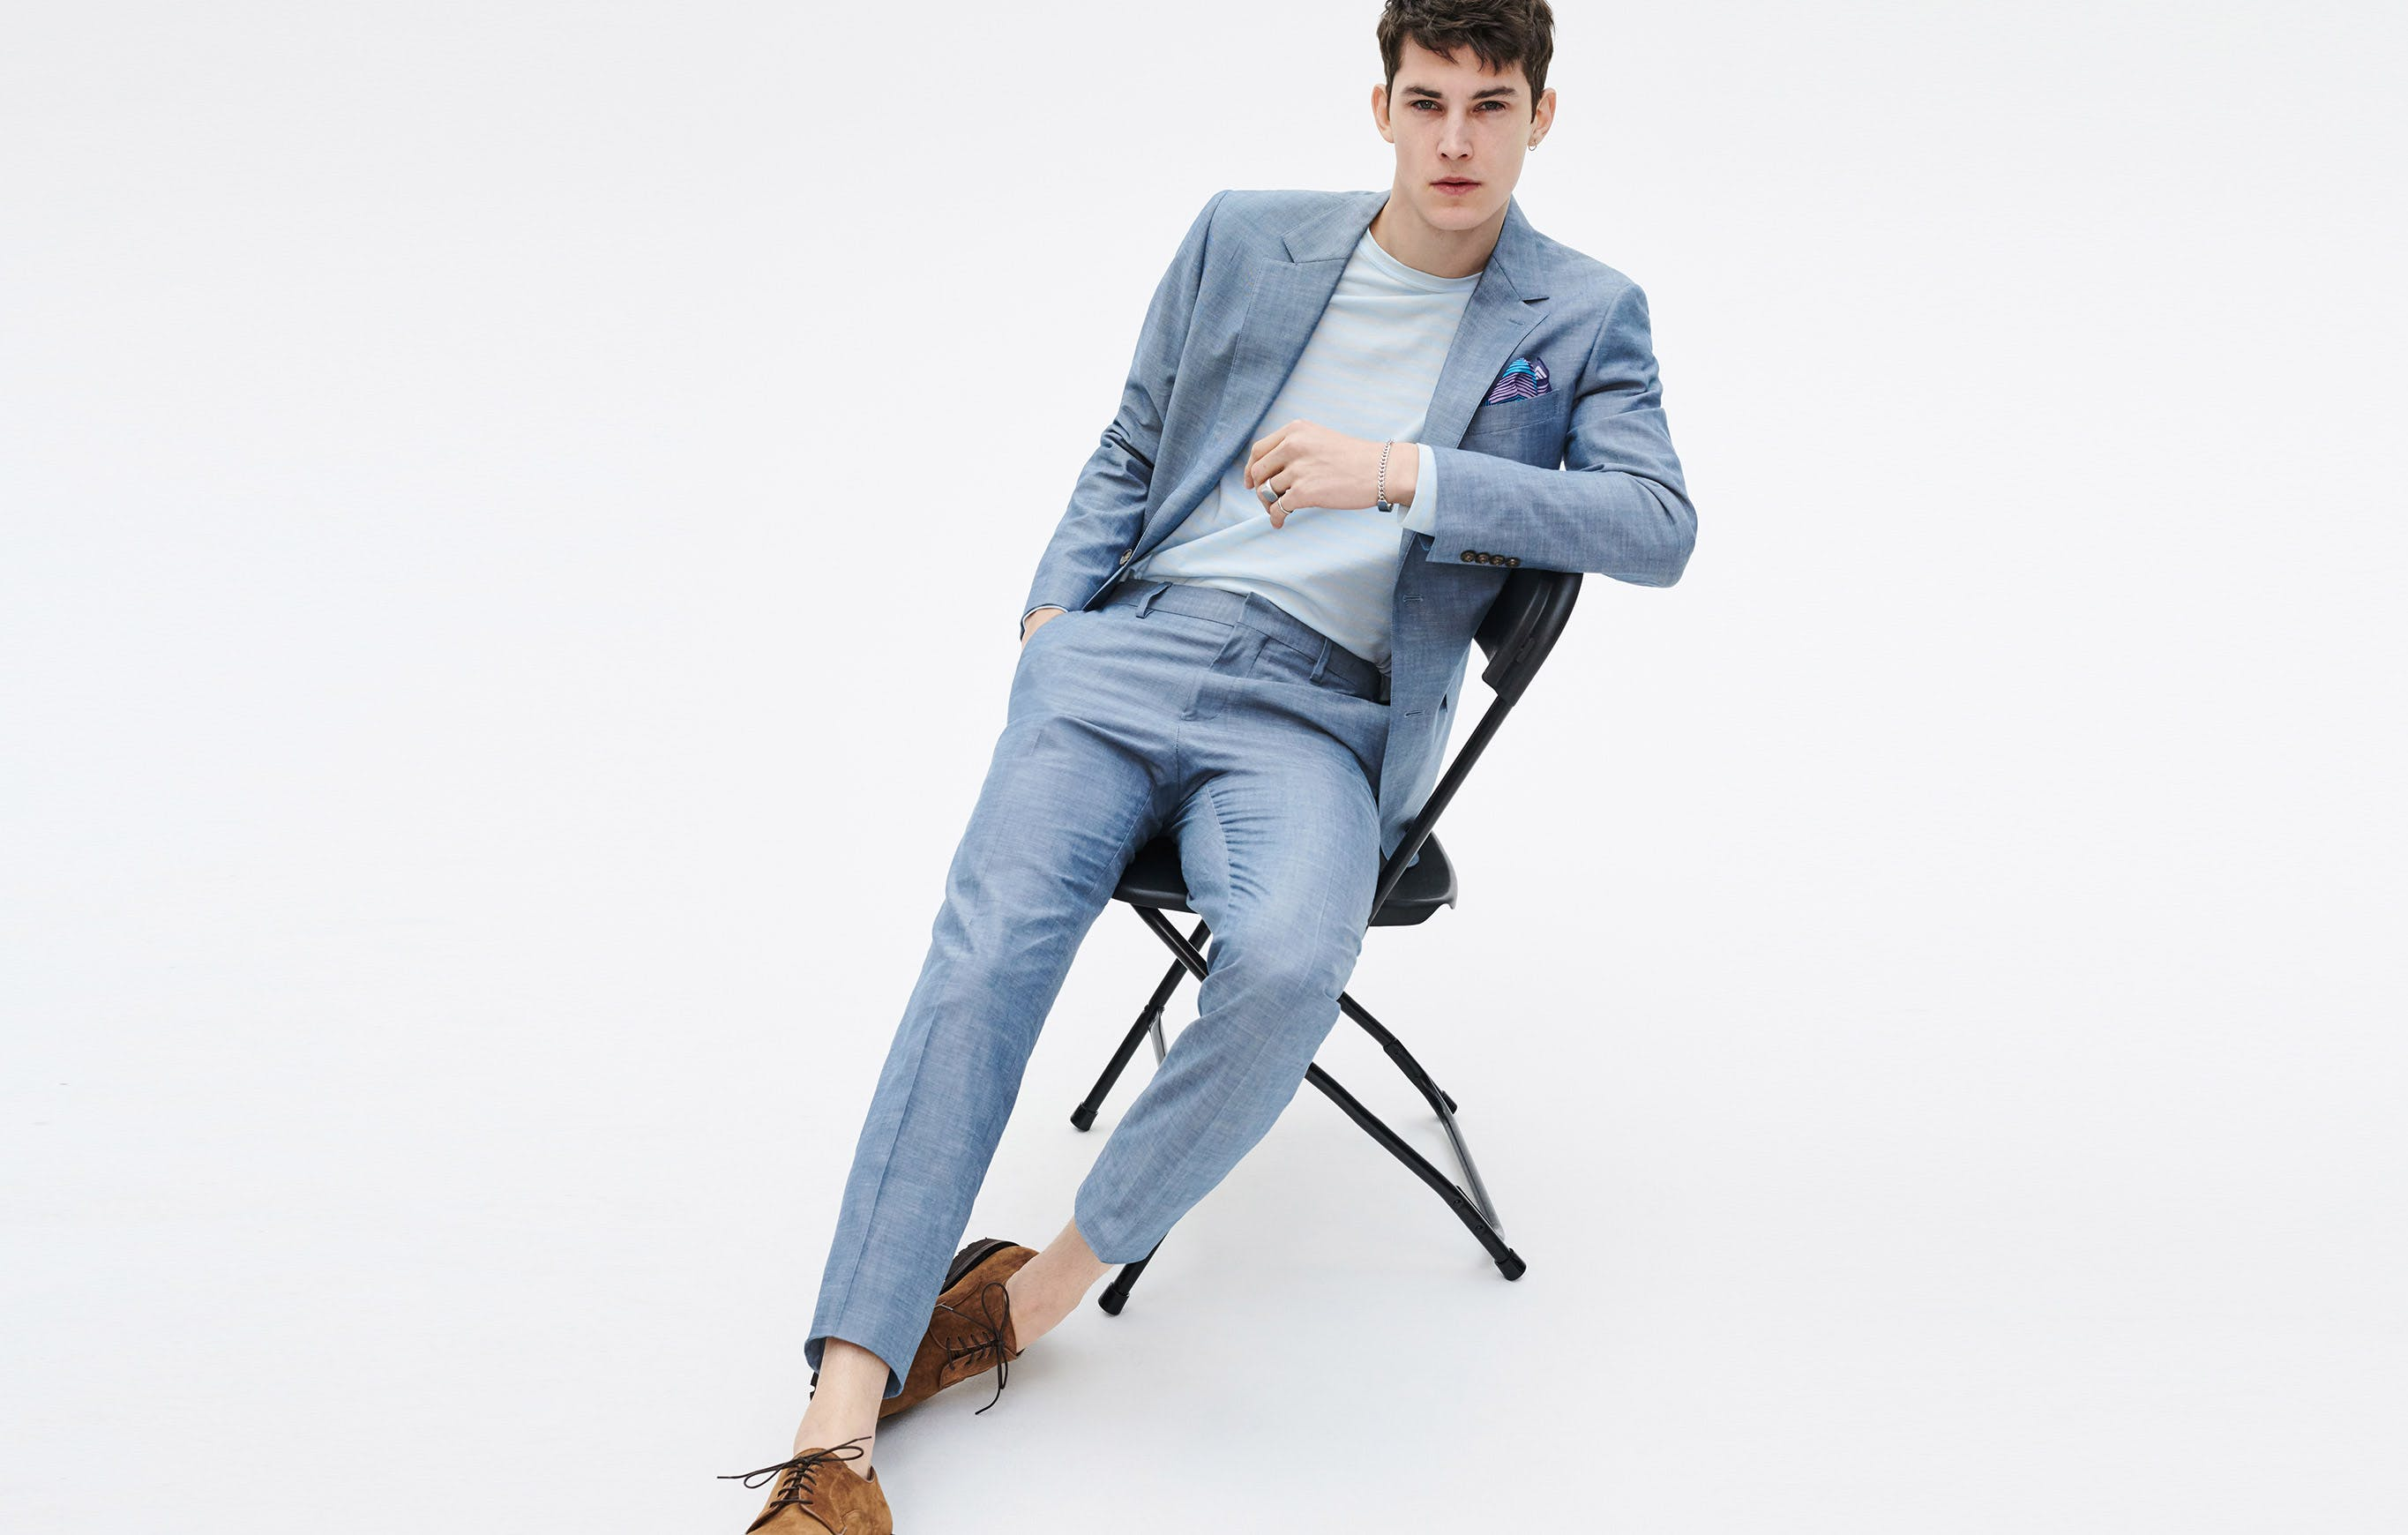 Even if you don't suit up every day, you'll likely still need one. The reasons may vary, but the needs will be the same: you can't look stuffy, you must look sharp. This chambray suit covers both.